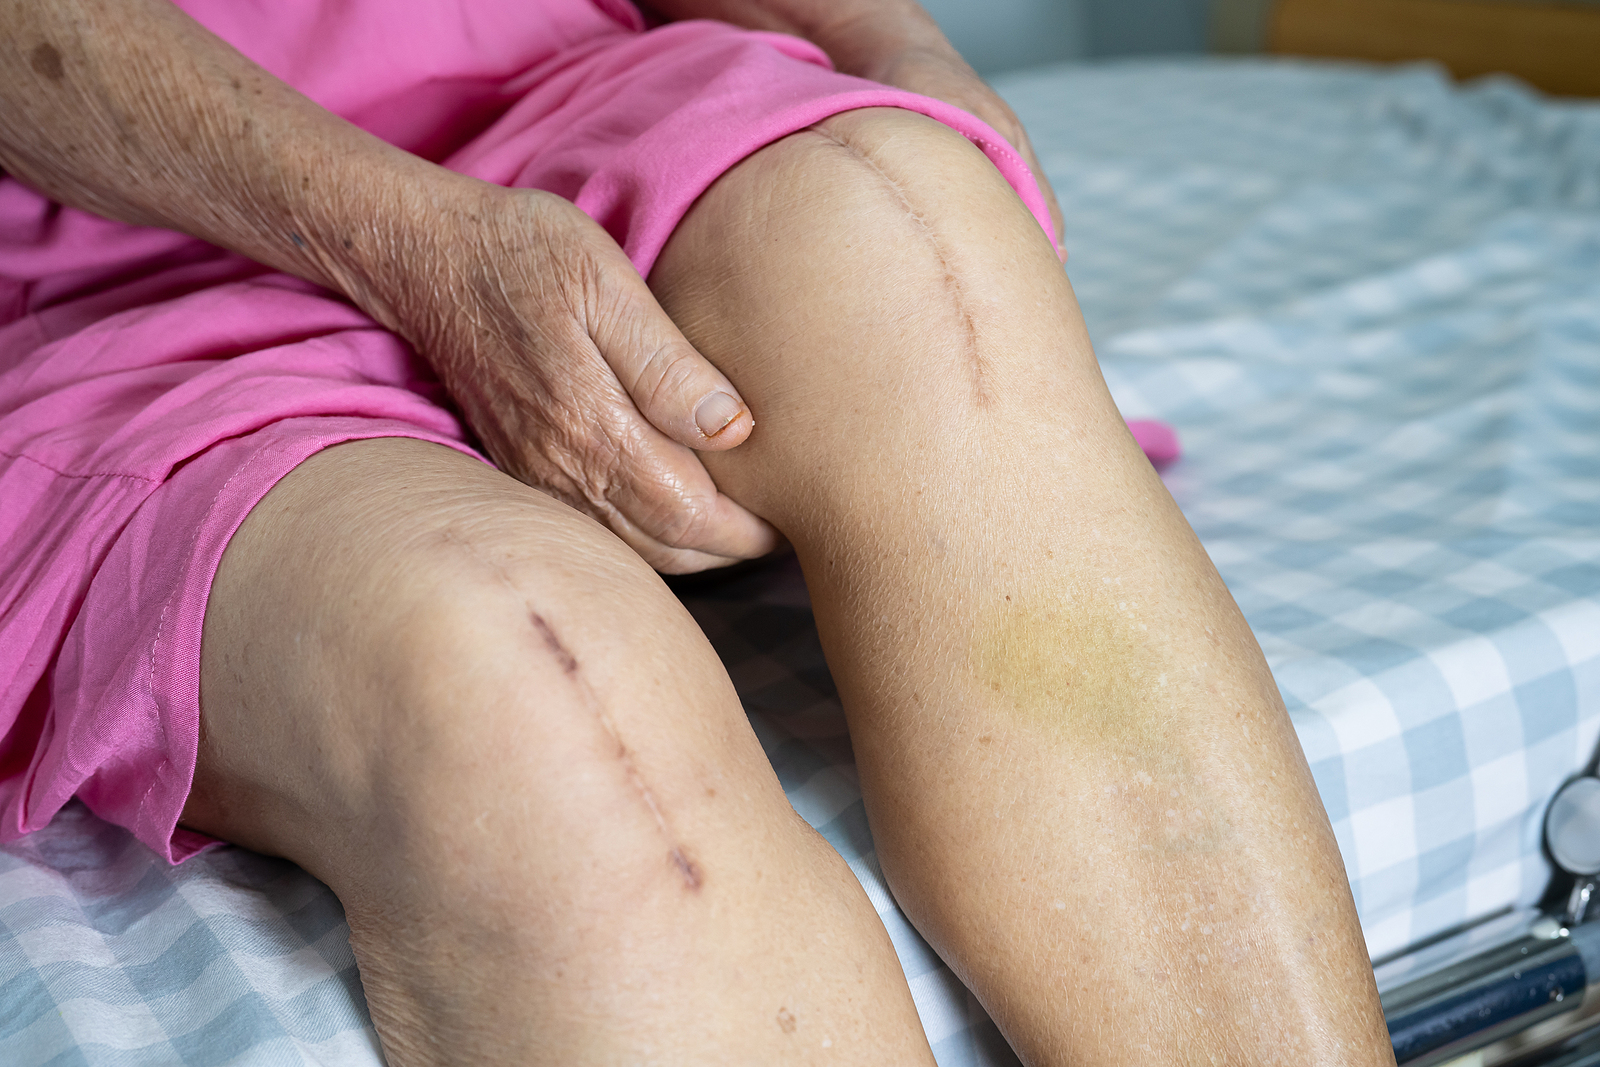 Senior Care in Sewickley PA: Knee Pain